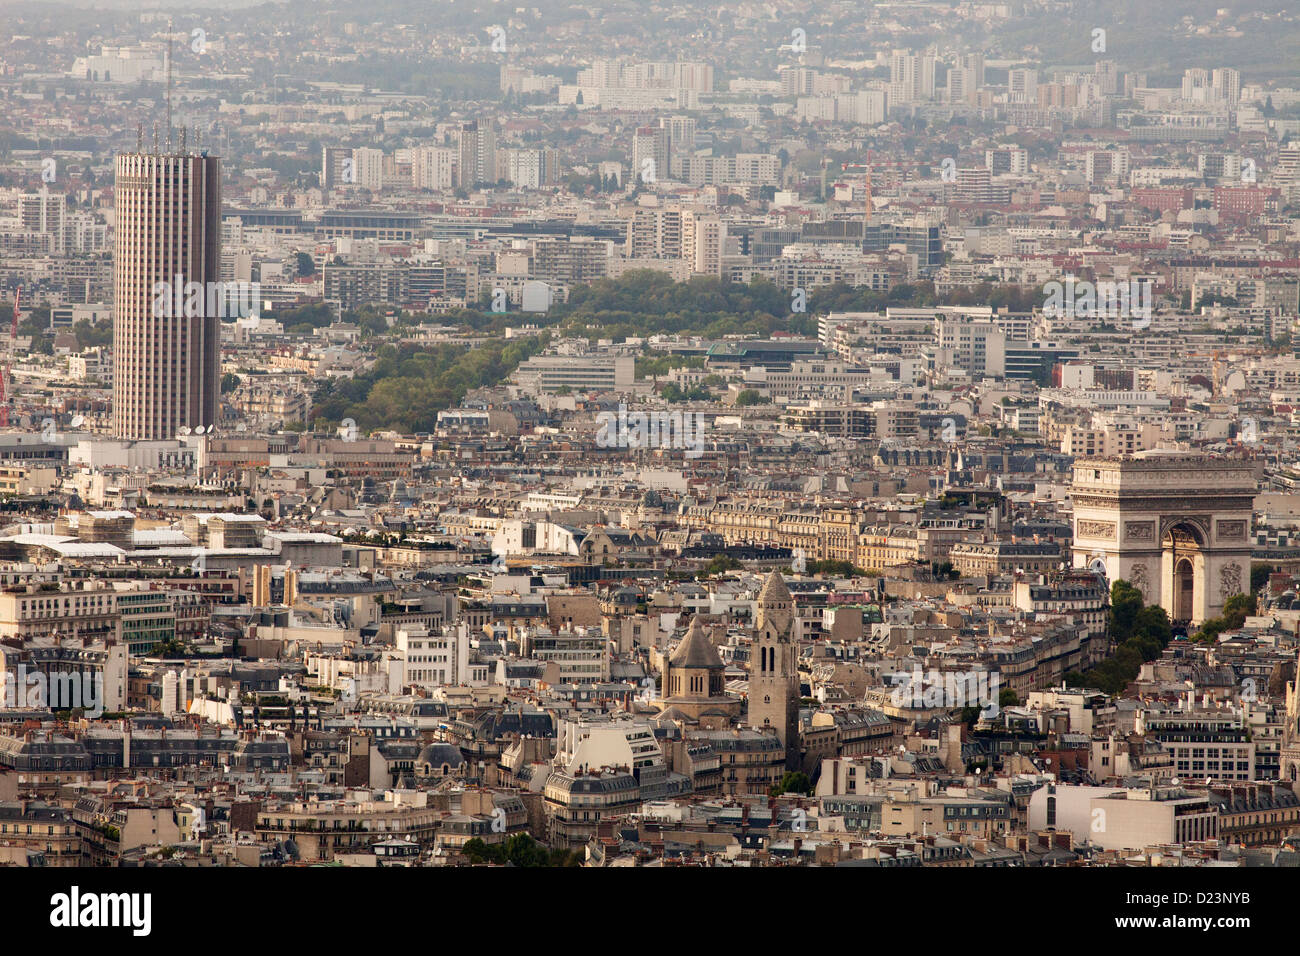 L'Arc de Triomphe and the Hotel Concorde La Fayette (tower) in Paris - view from tour Montparnasse - Stock Image